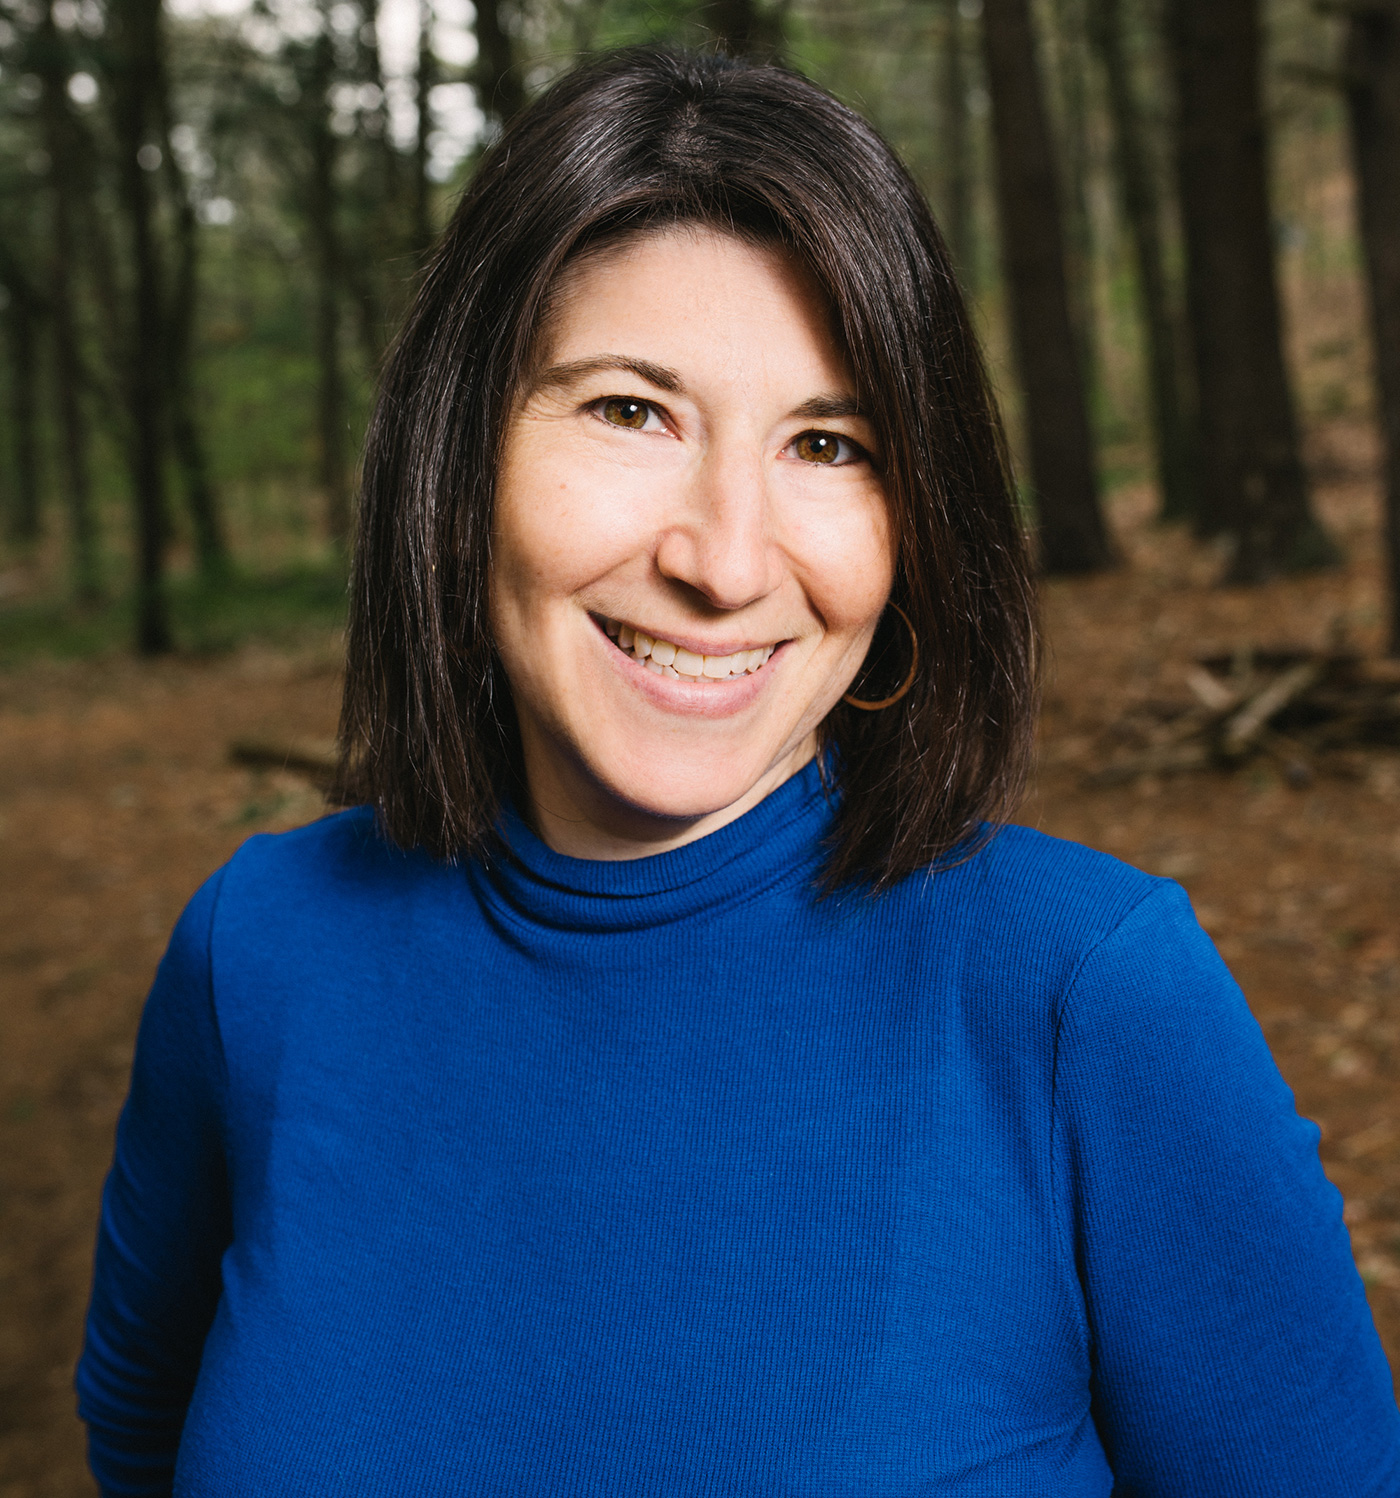 Naomi Wernick is a Senior Lecturer in the Department of Biological Sciences at UMass Lowell.